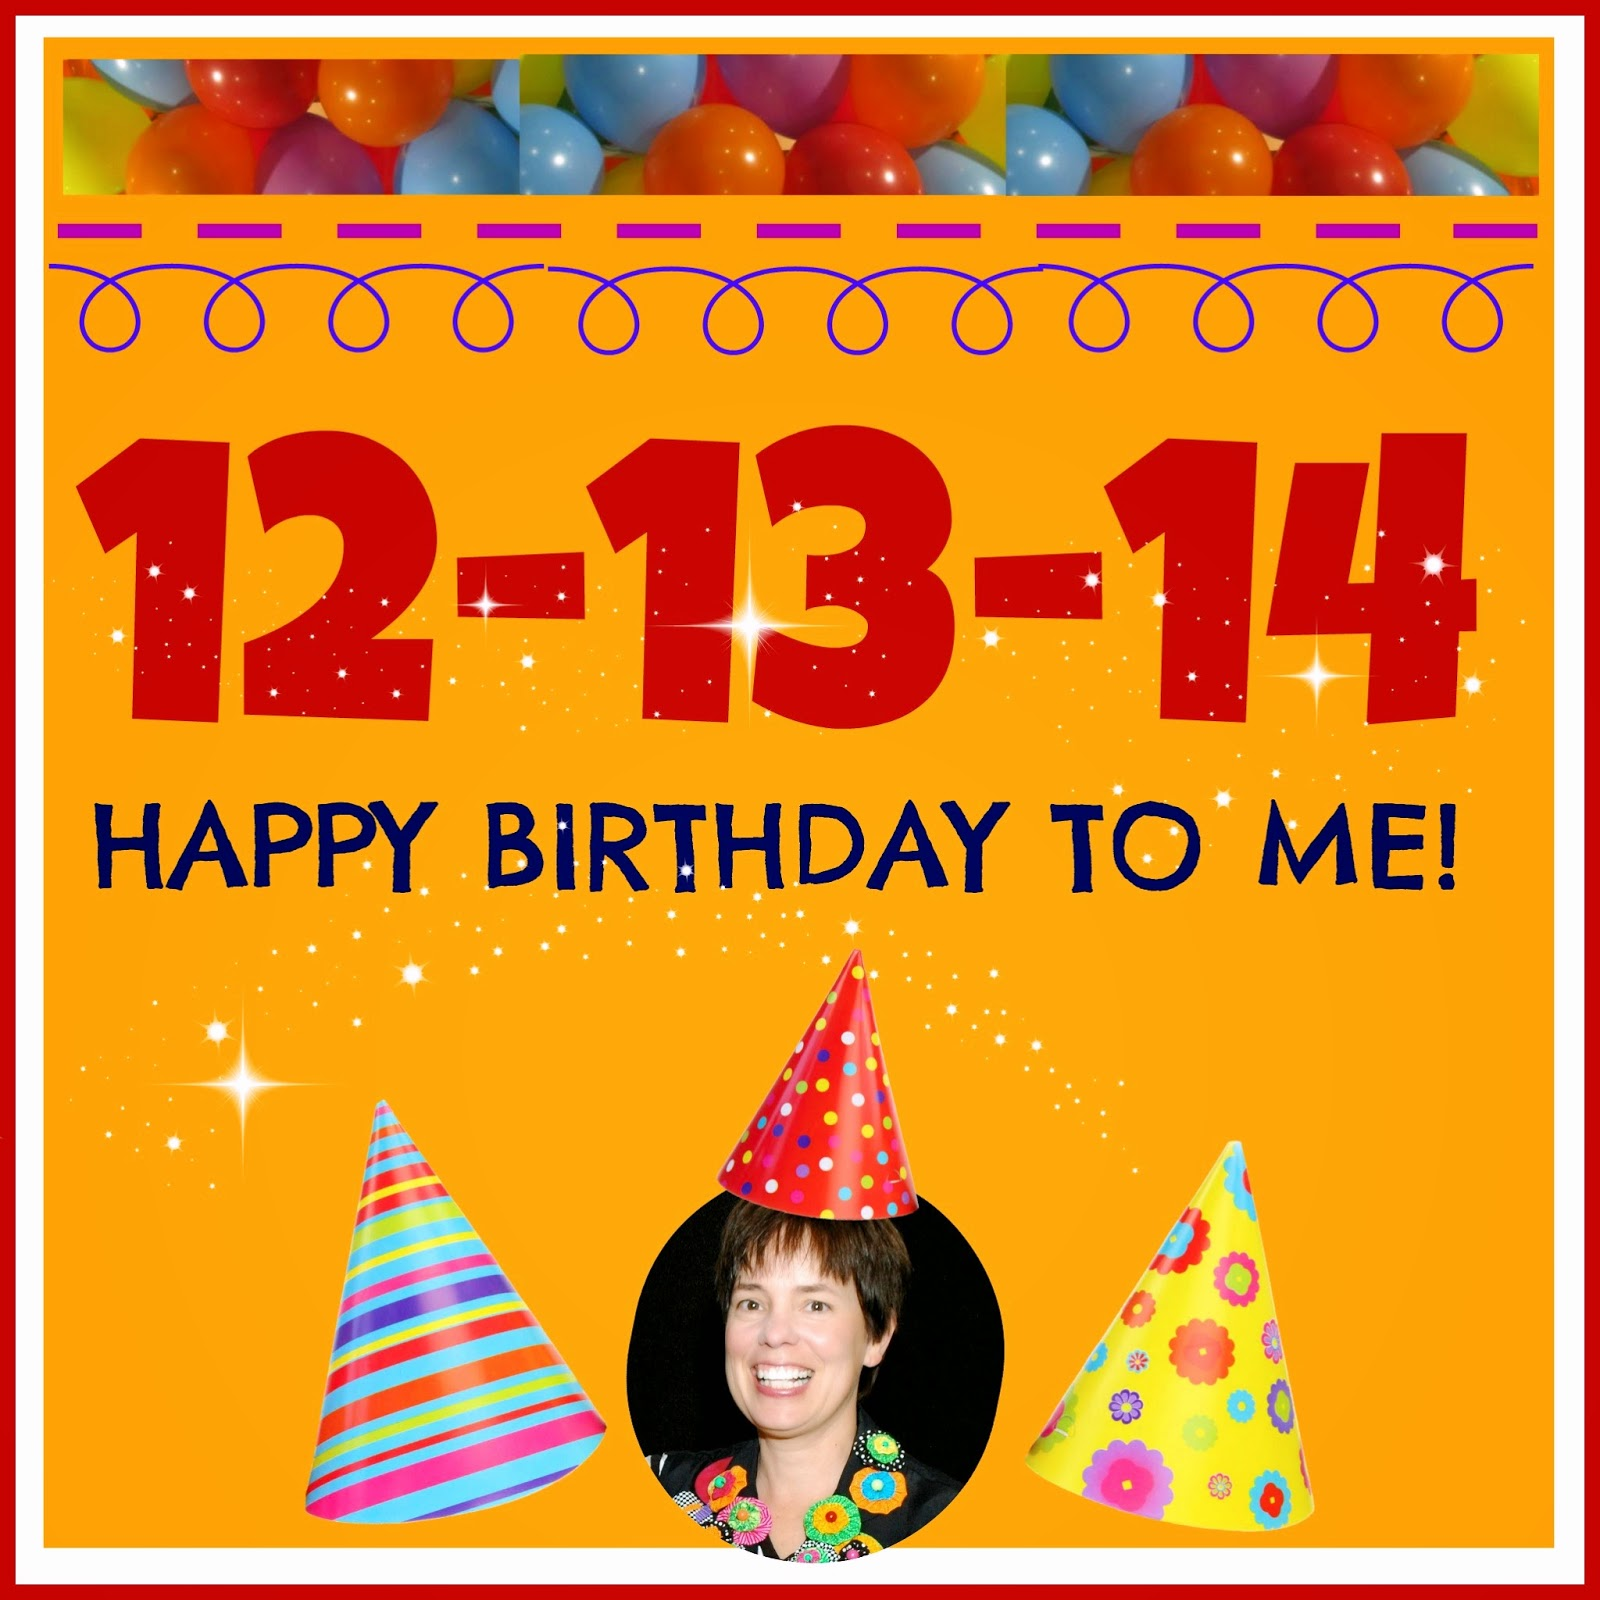 12-13-14! Birthday CELEBRATION with Debbie Clement at RainbowsWithinReach